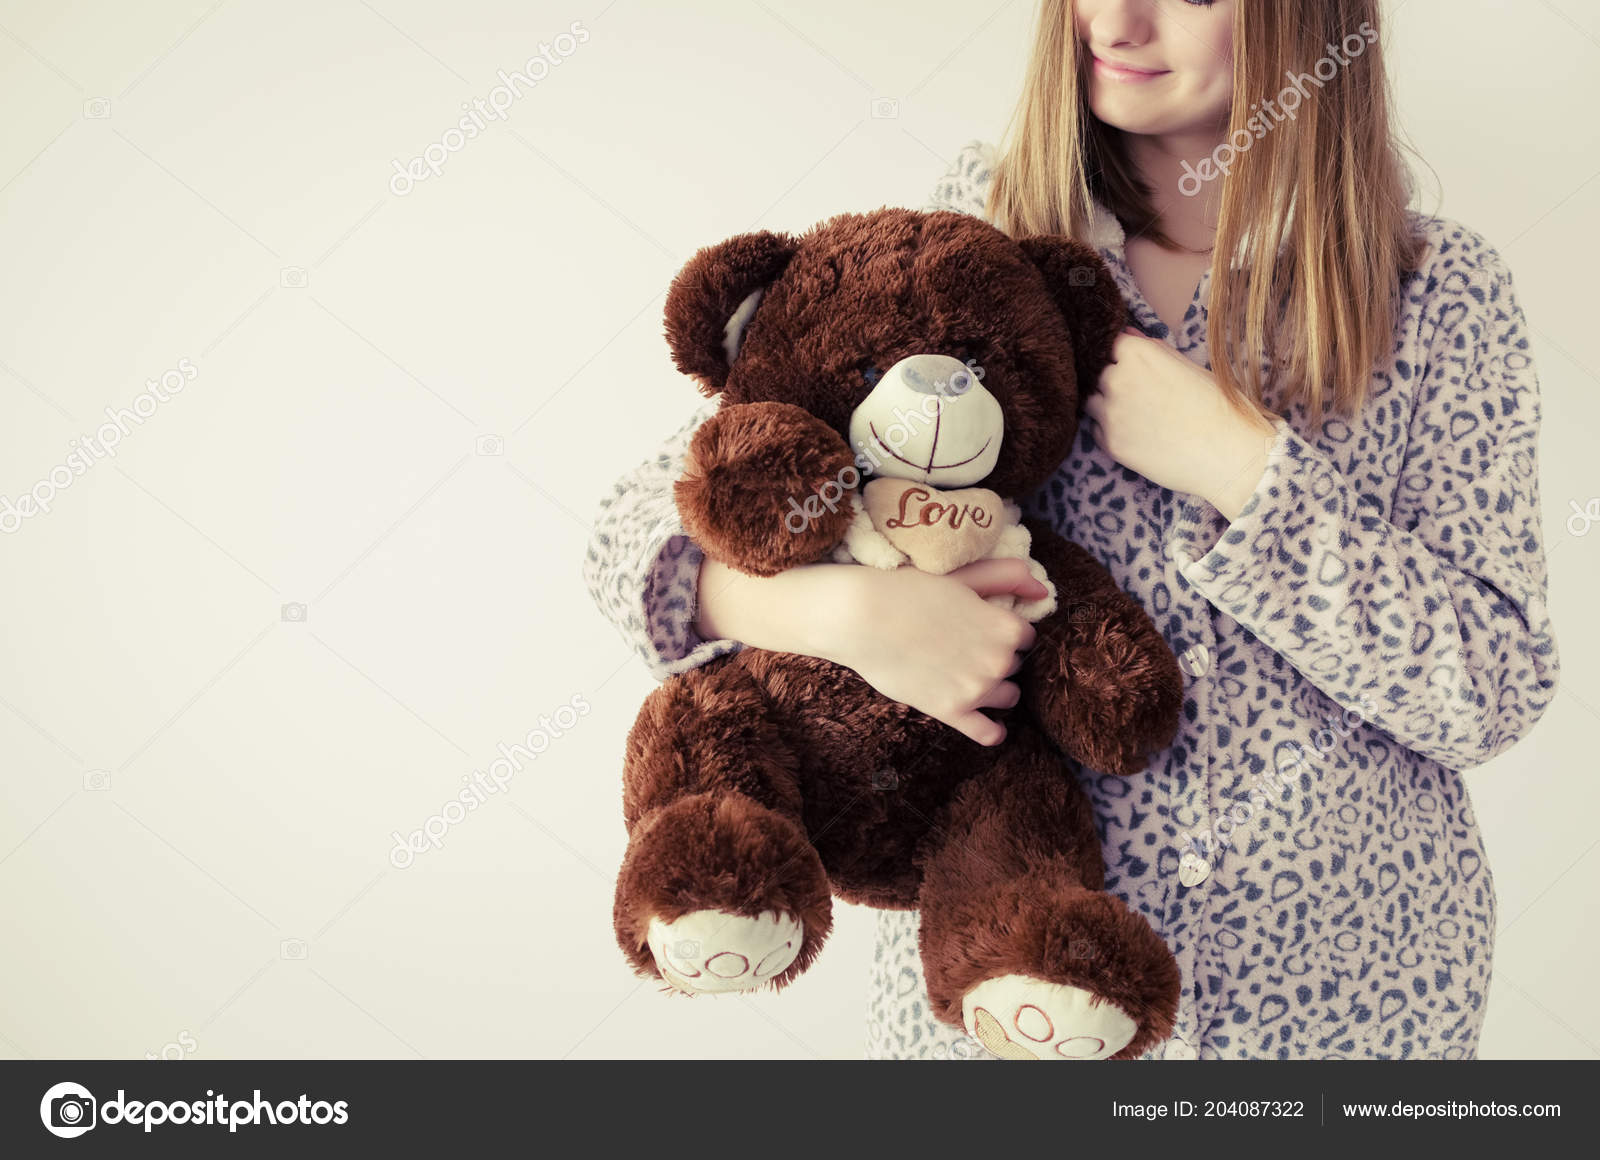 Happy Young Woman Blonde Hair Embrace Stuffed Animal Toy Favorite